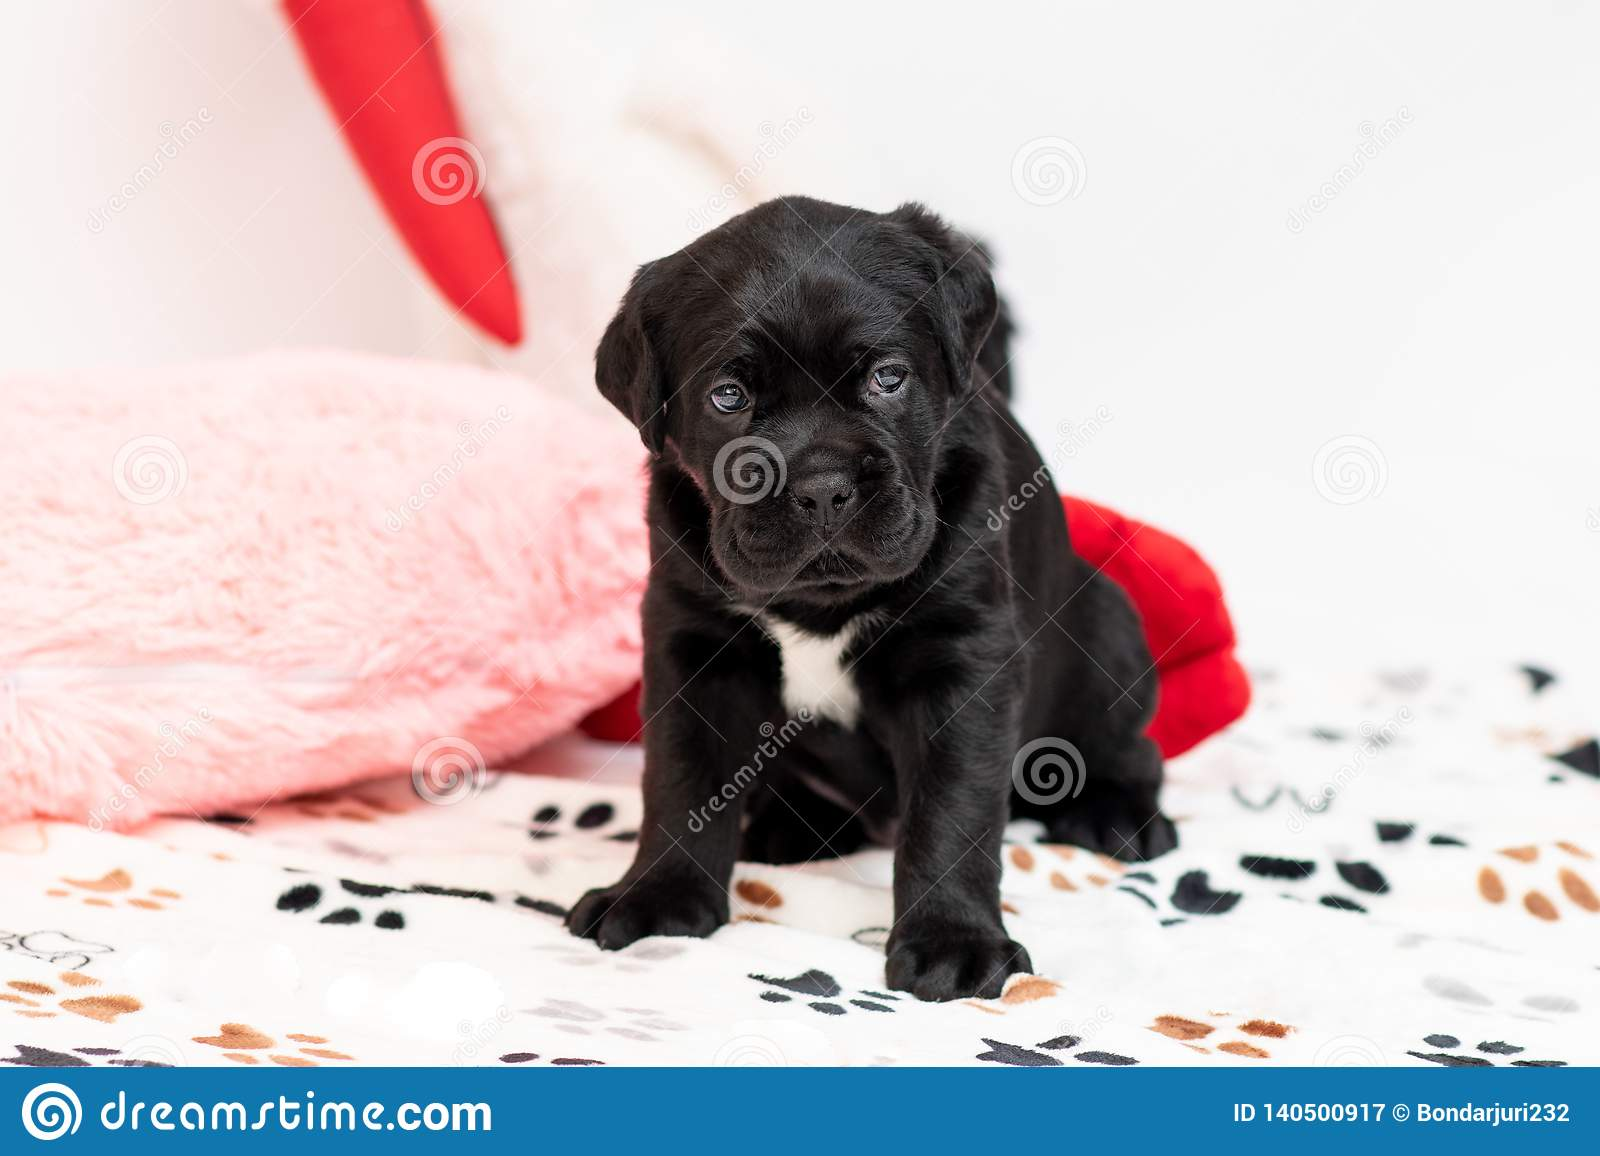 Little Puppy Breed Cane Corso This Is A Large Massive Energetic Well Built Dog Stock Image Image Of Little Animal 140500917